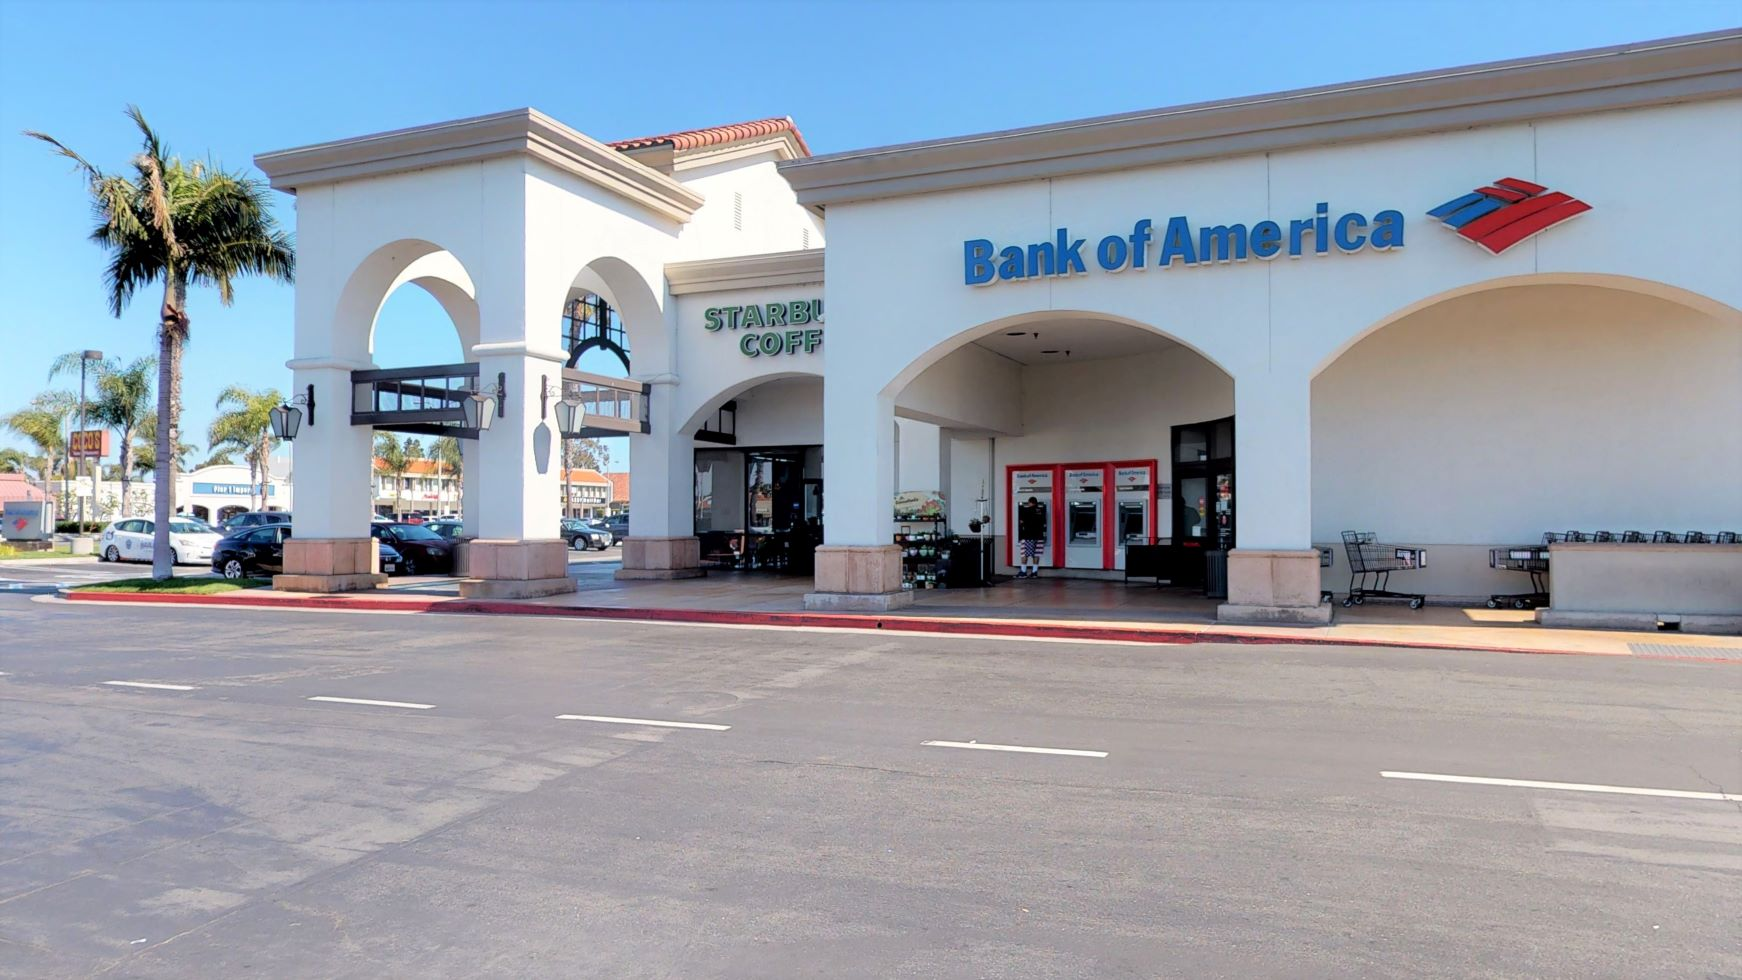 Bank of America financial center with walk-up ATM   2701 Harbor Blvd STE C2, Costa Mesa, CA 92626